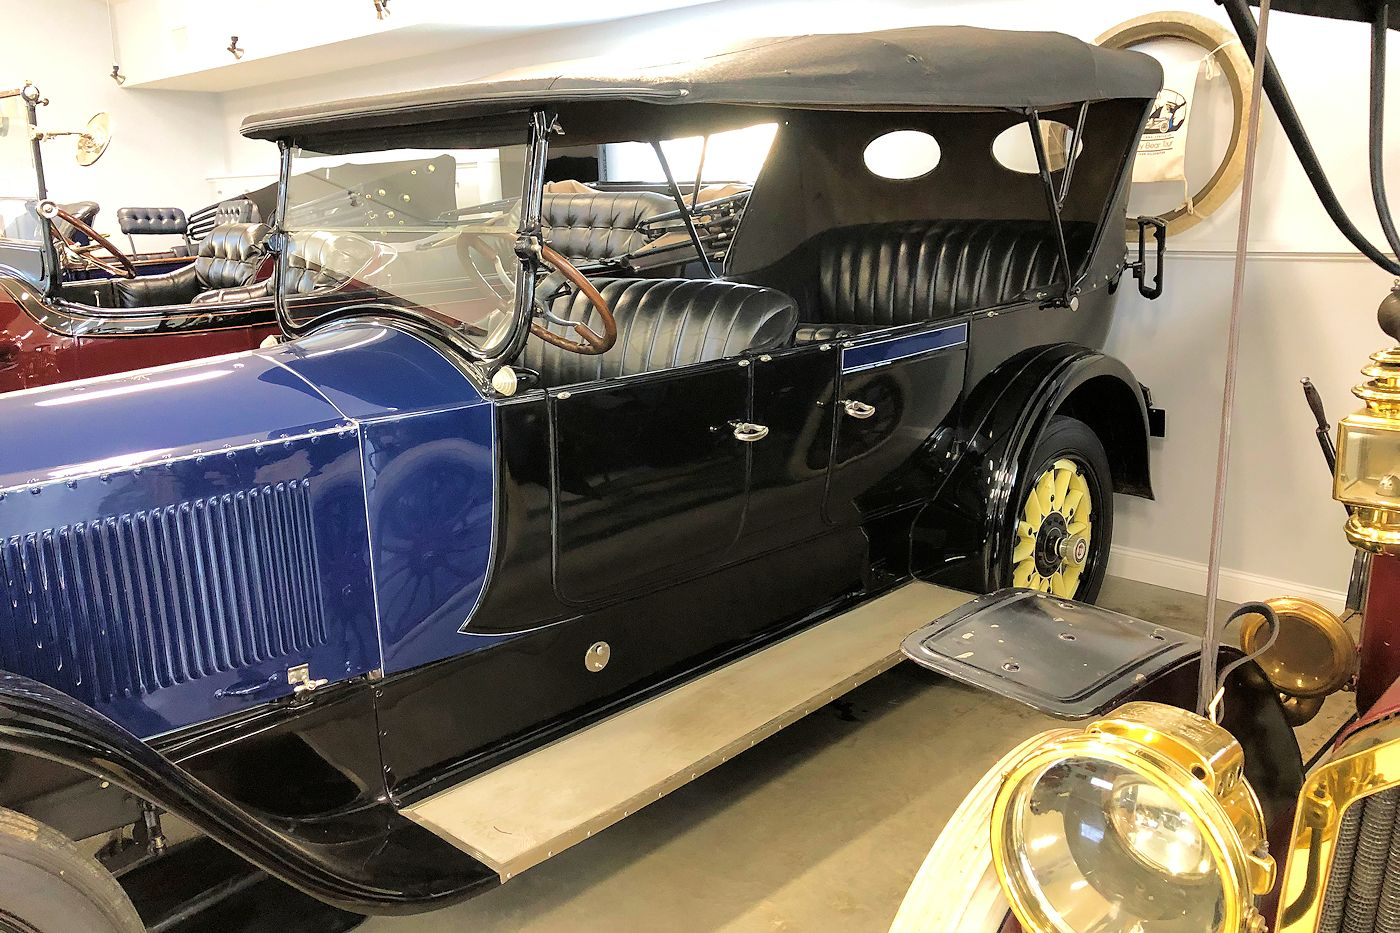 1921 Packard Twin 6, Model 135, 7 Passanger Touring - Laidlaw Antique Auto Restoration